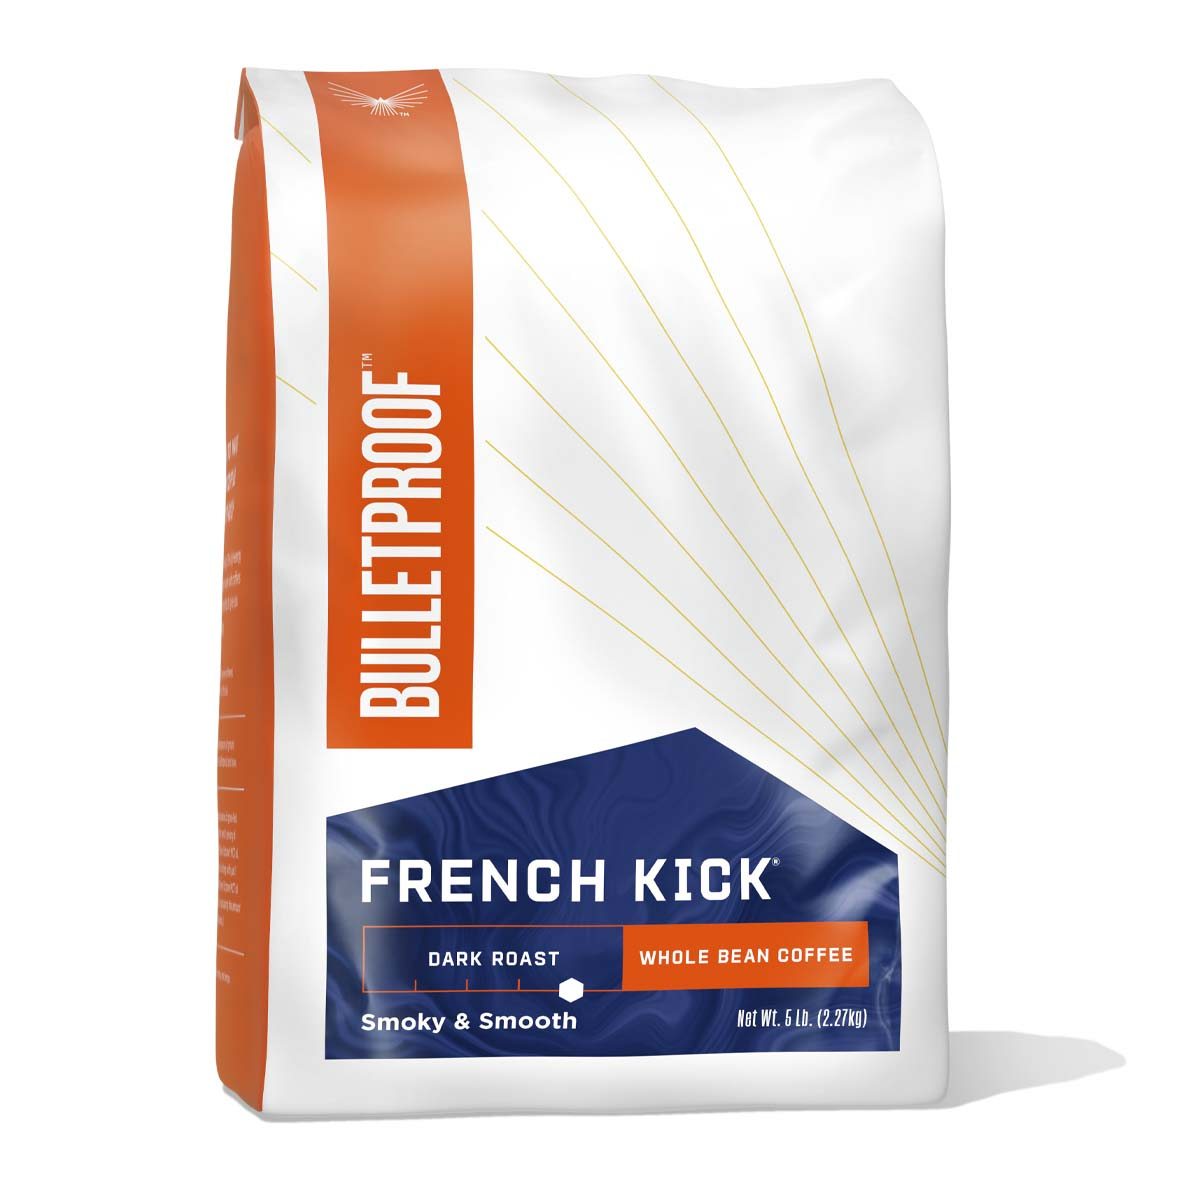 Bulletproof French Kick Dark Roast Whole Bean Coffee - 5 lb